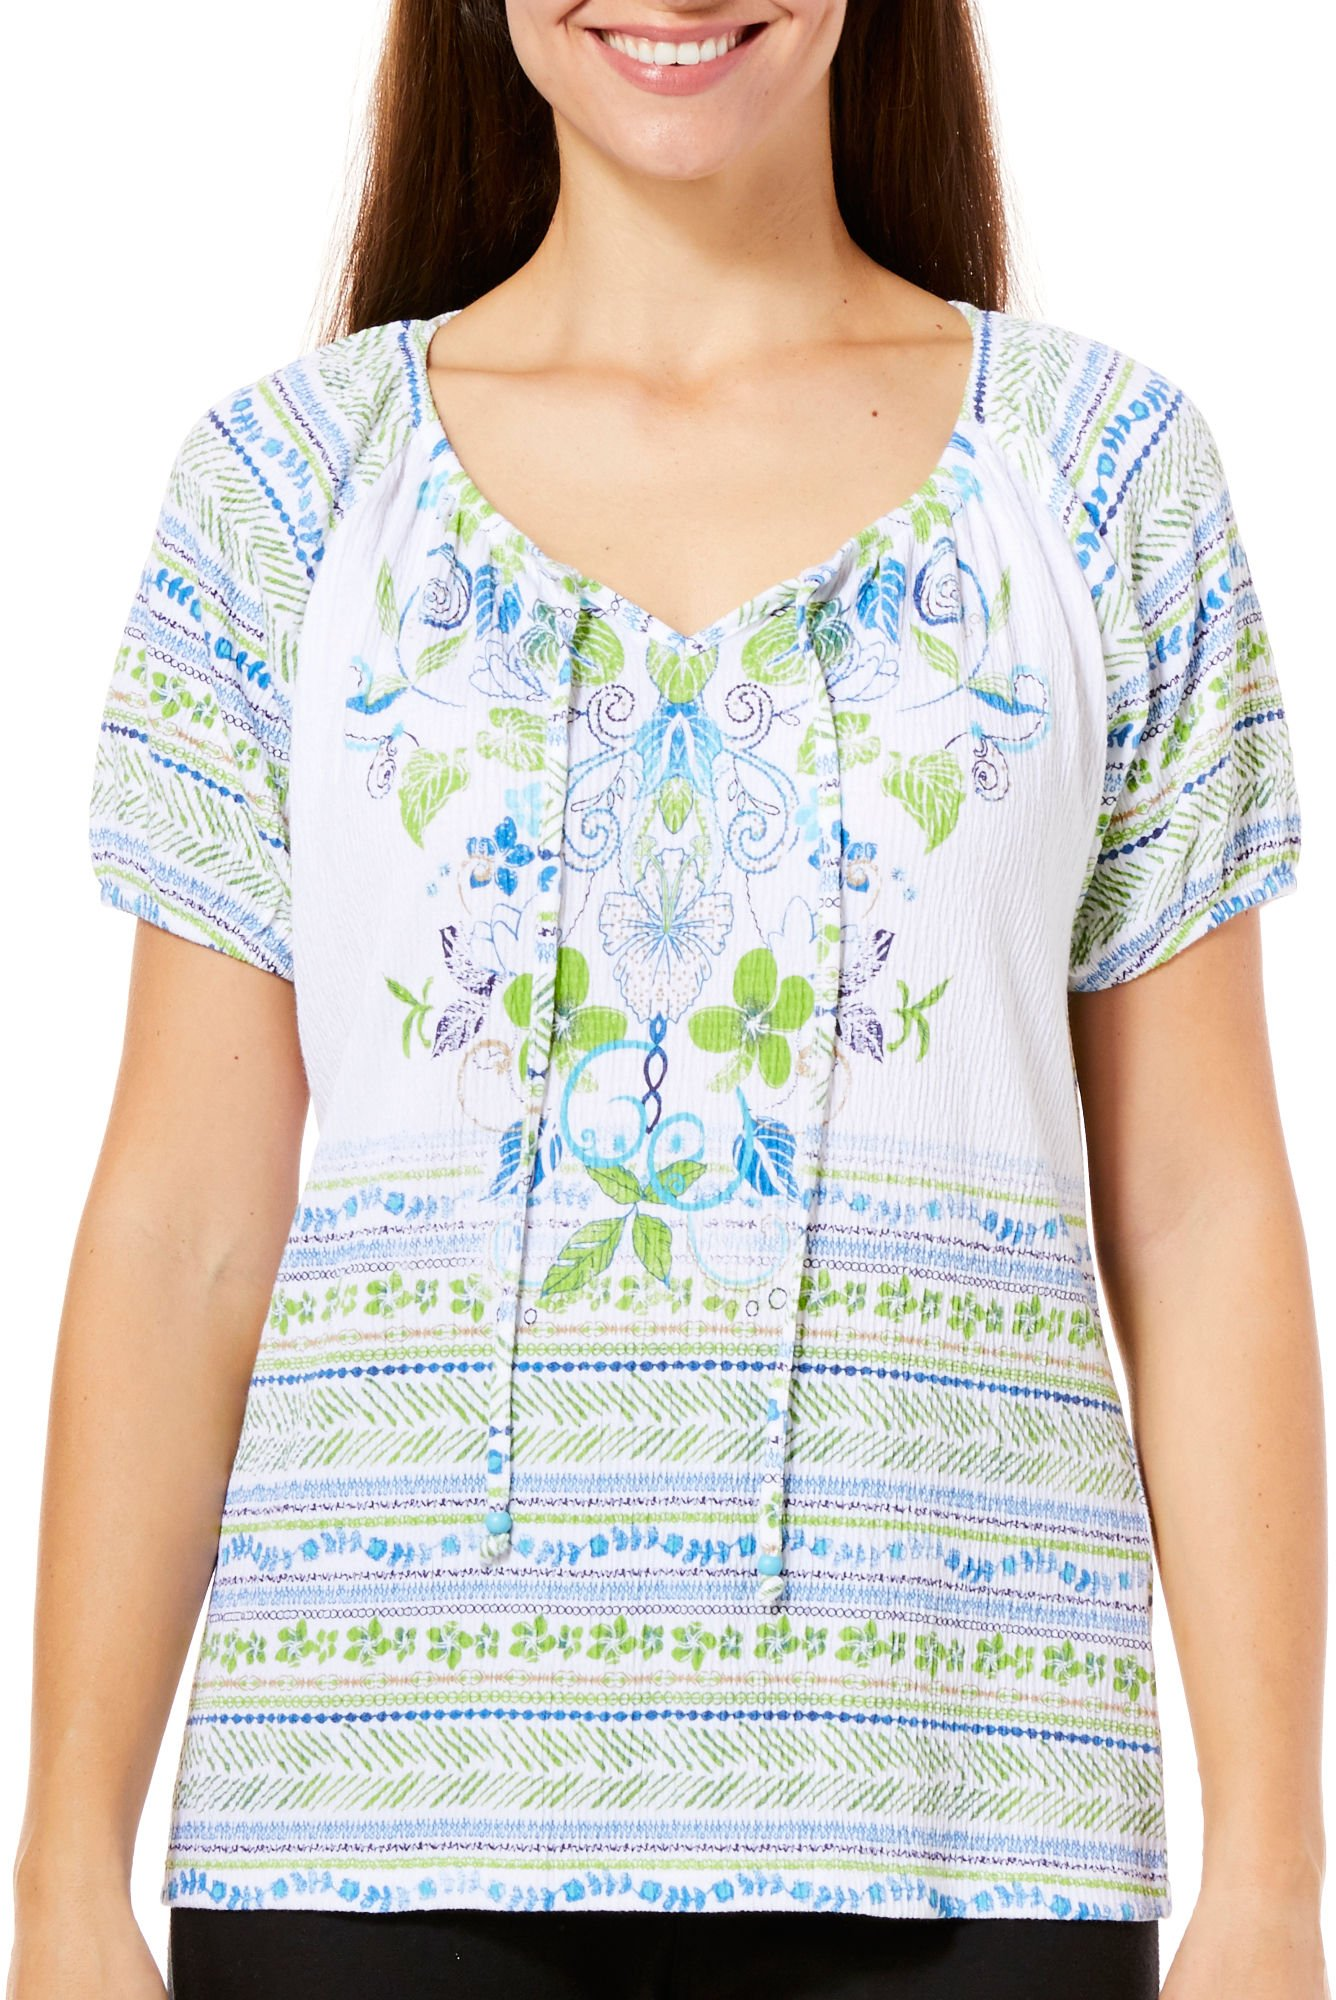 Coral Bay Petite Gauze Mixed Floral Print Peasant Top X-Large Petite Green/blue/white